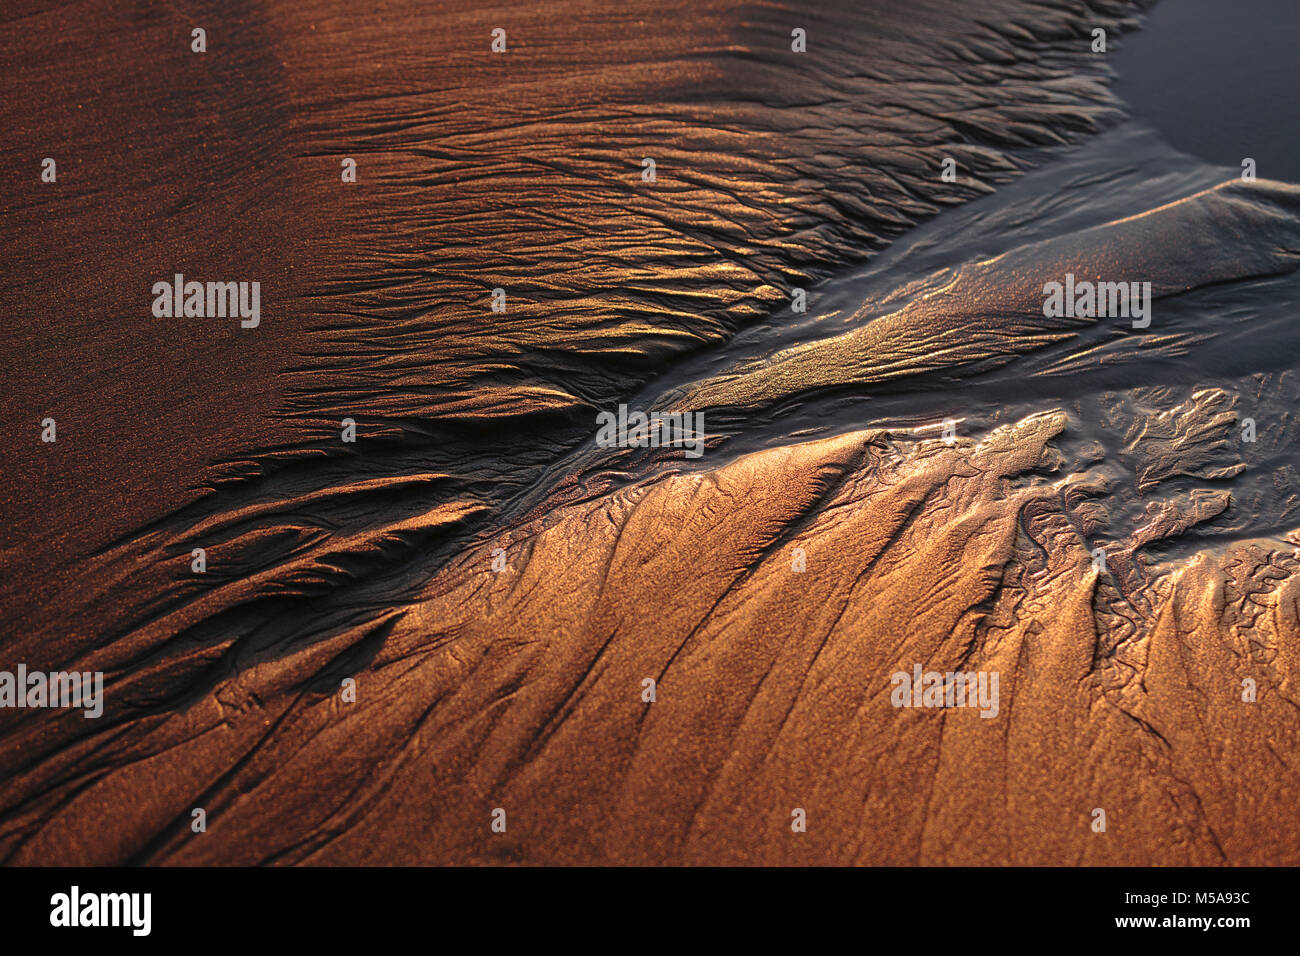 High angle close up of patterns in beach sand at dusk. - Stock Image